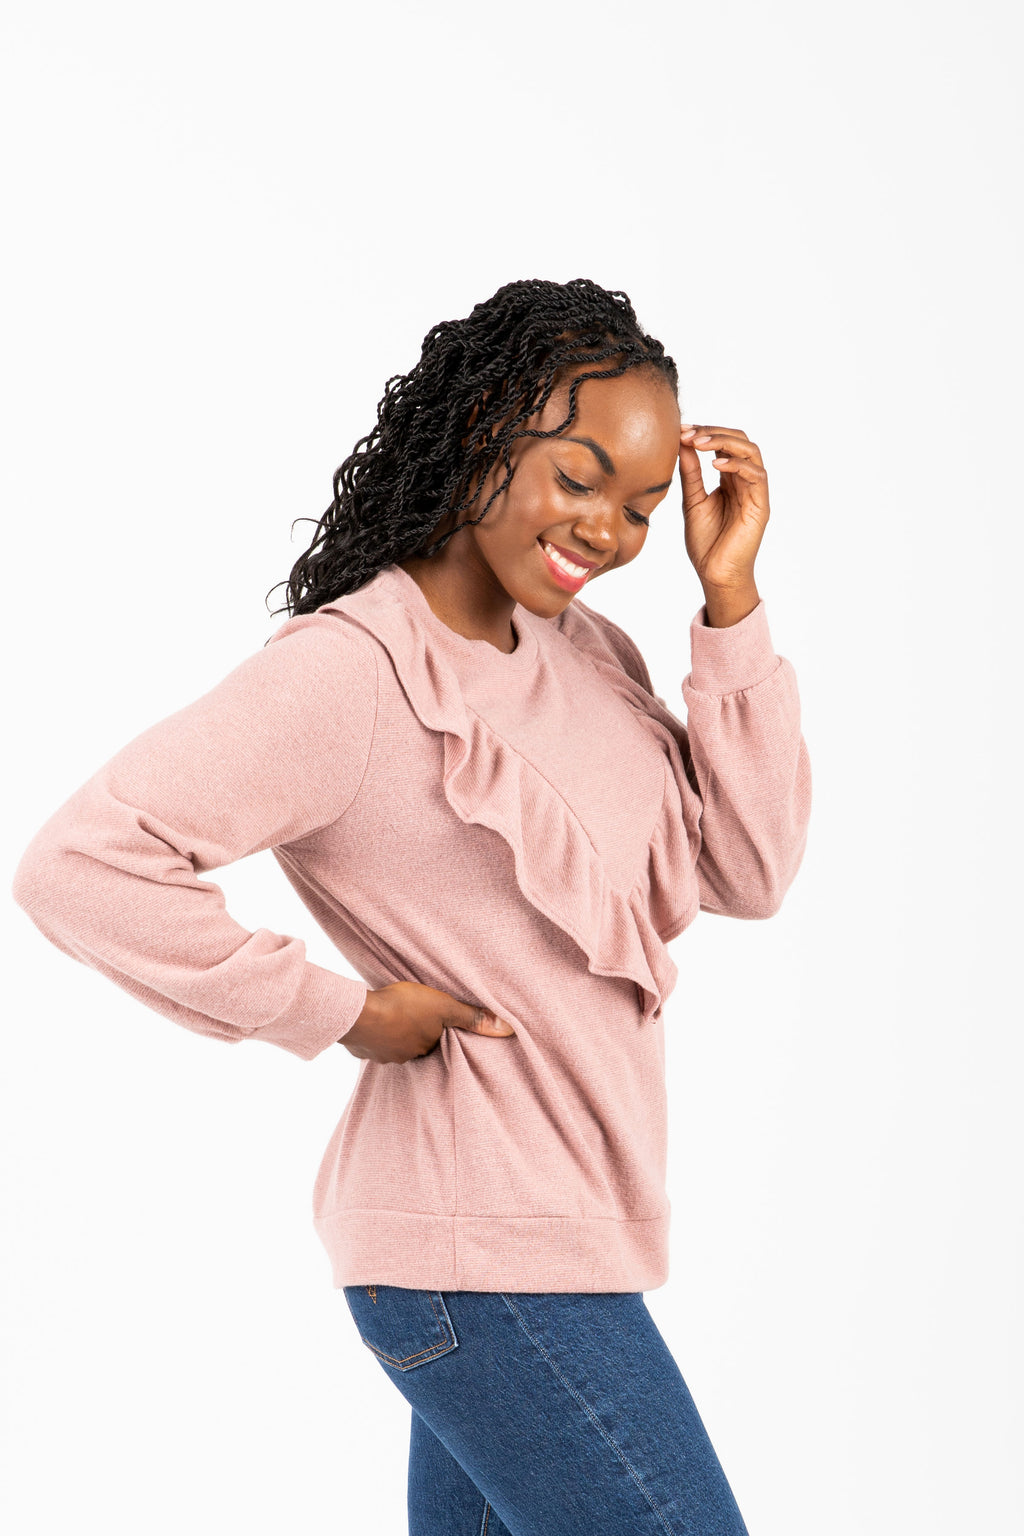 The Rankin Ruffle Casual Knit in Mauve, studio shoot; side view